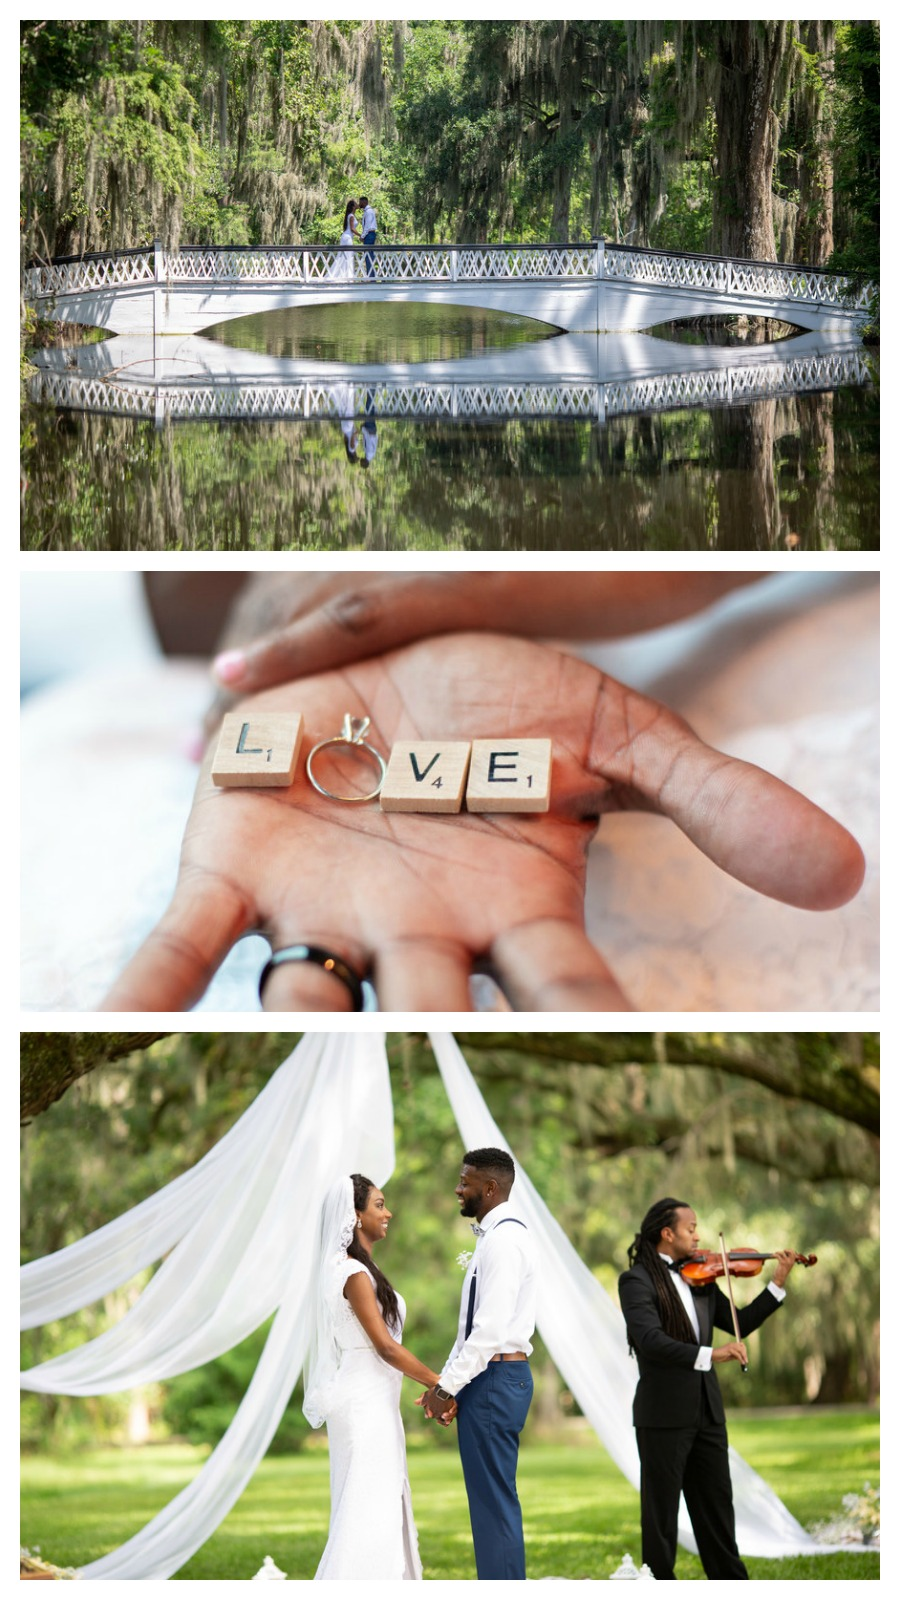 Christina and Keith: Intimate Outdoor Elopement at Magnolia Plantation   Palmetto State Weddings   Kevin Maurice Photography   Charleston elopement   small Charleston wedding venue   Charleston SC wedding